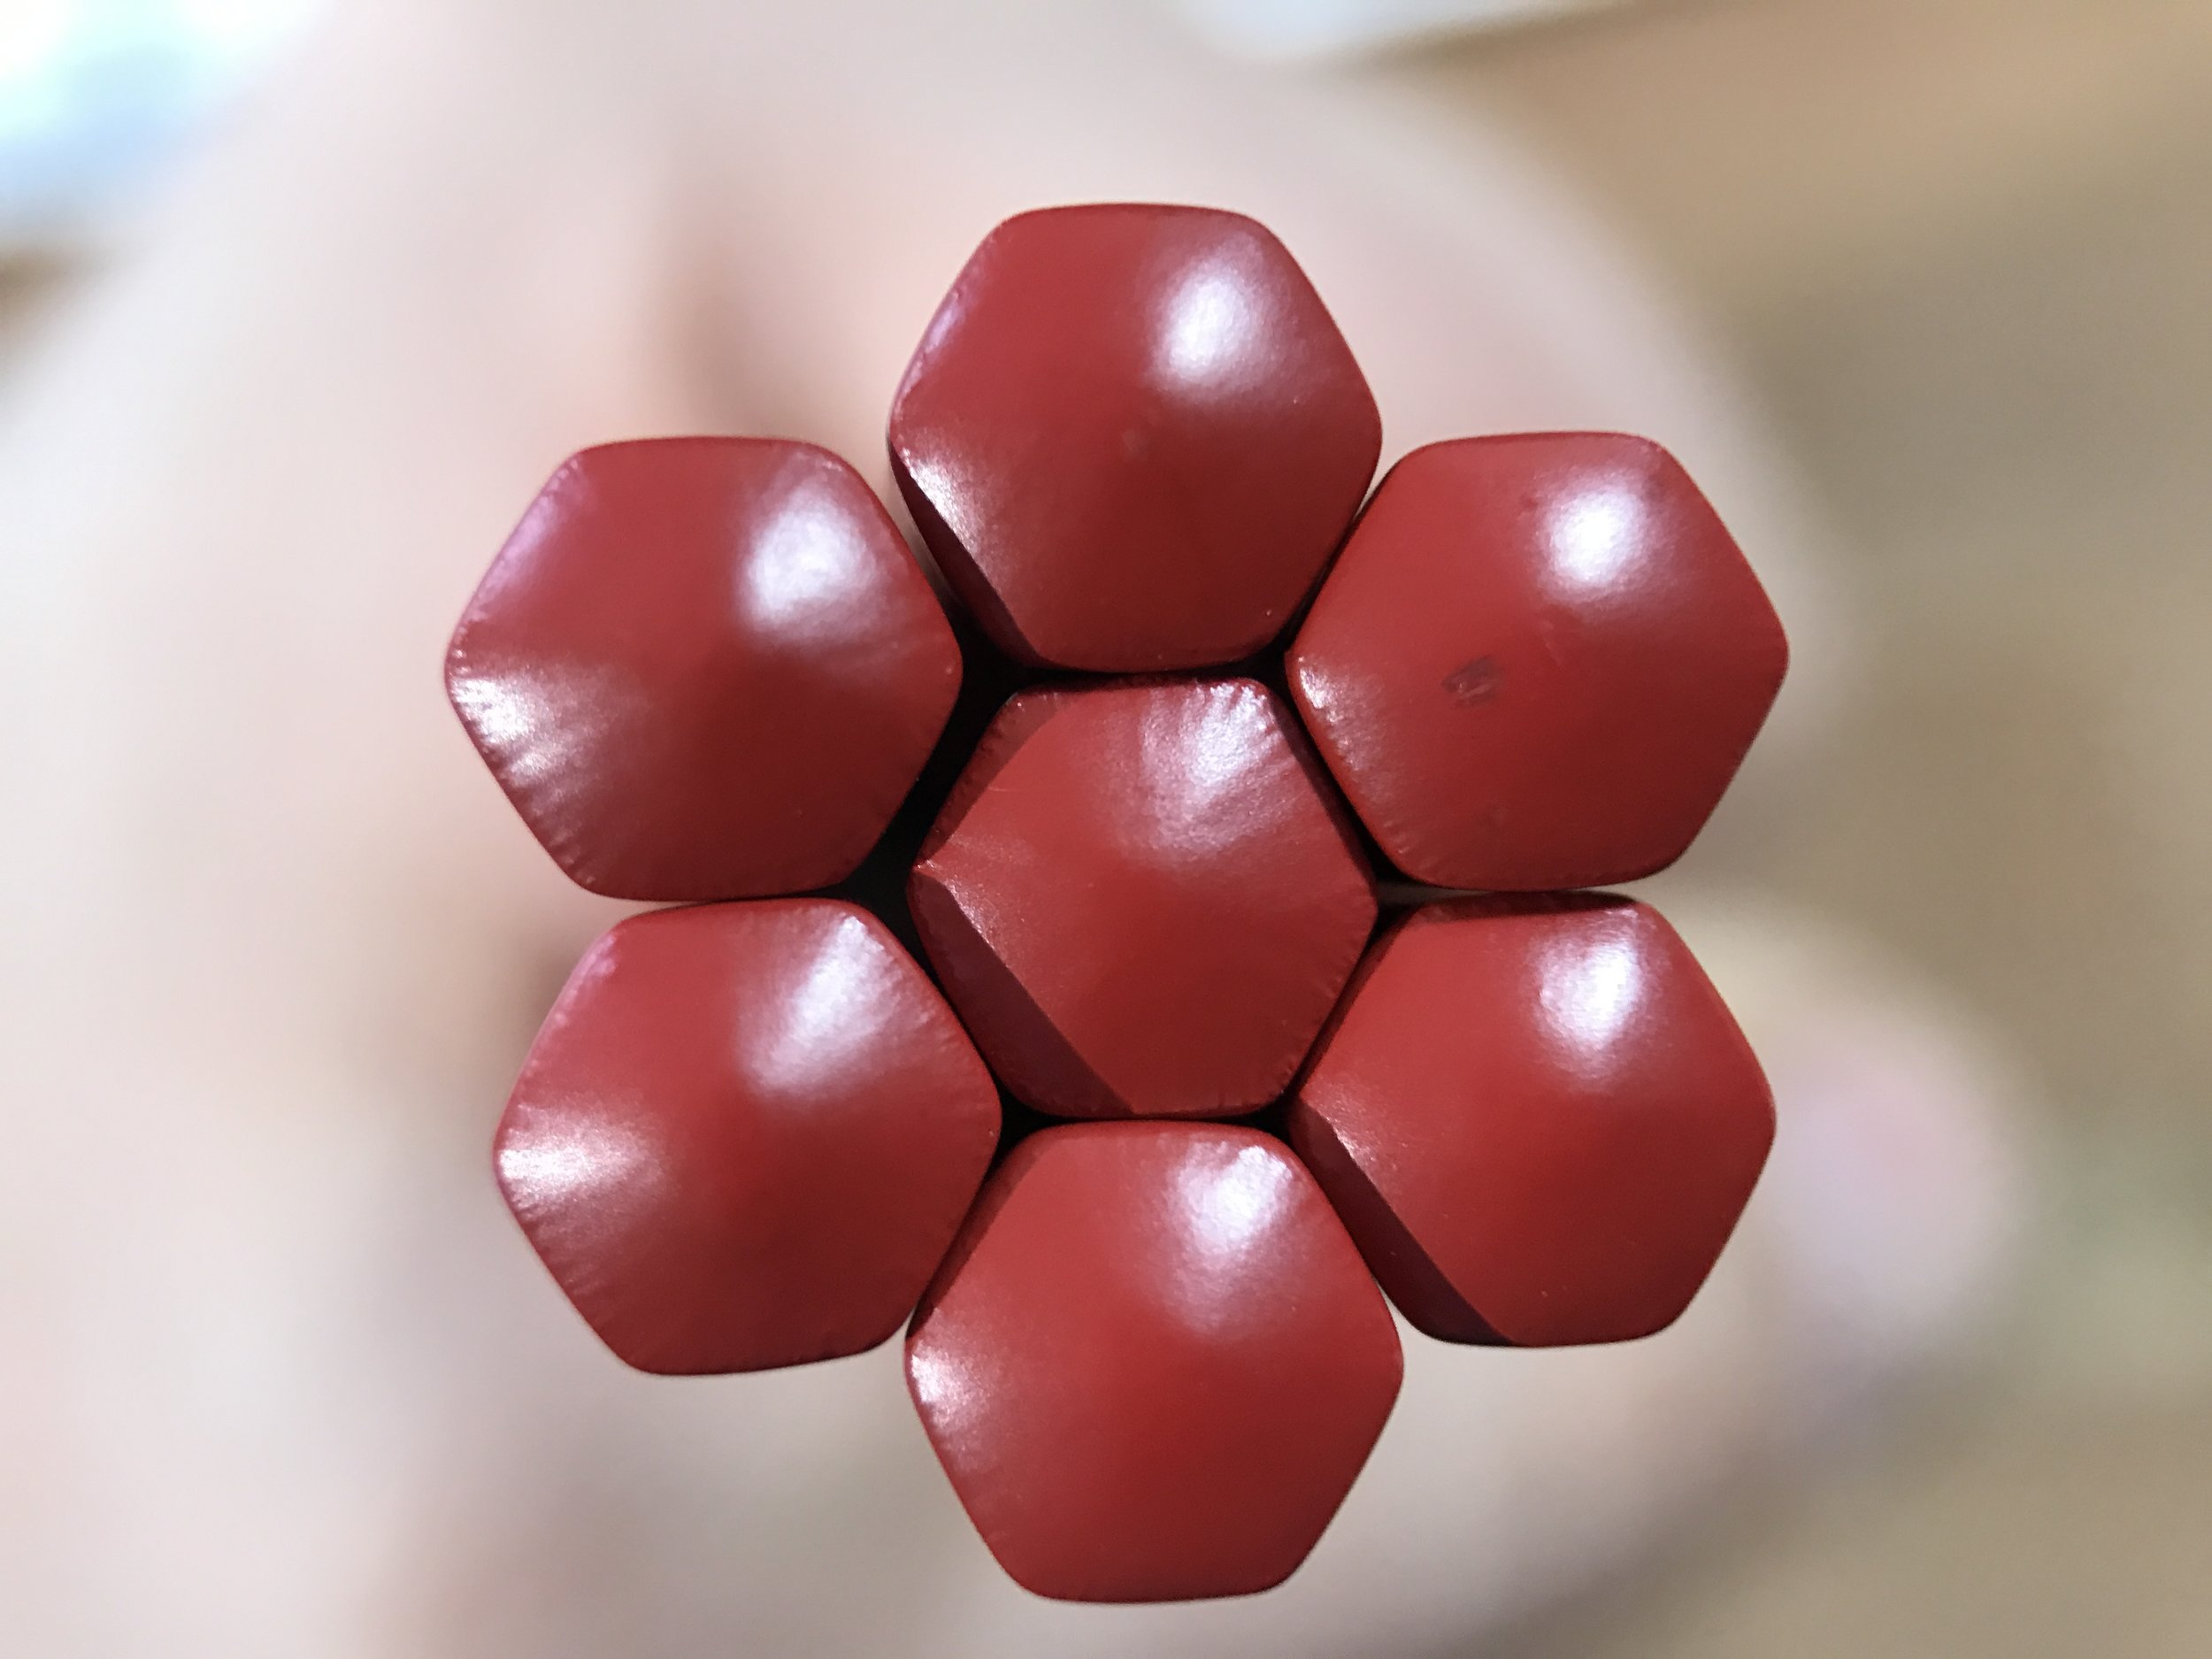 A hex from hexes.